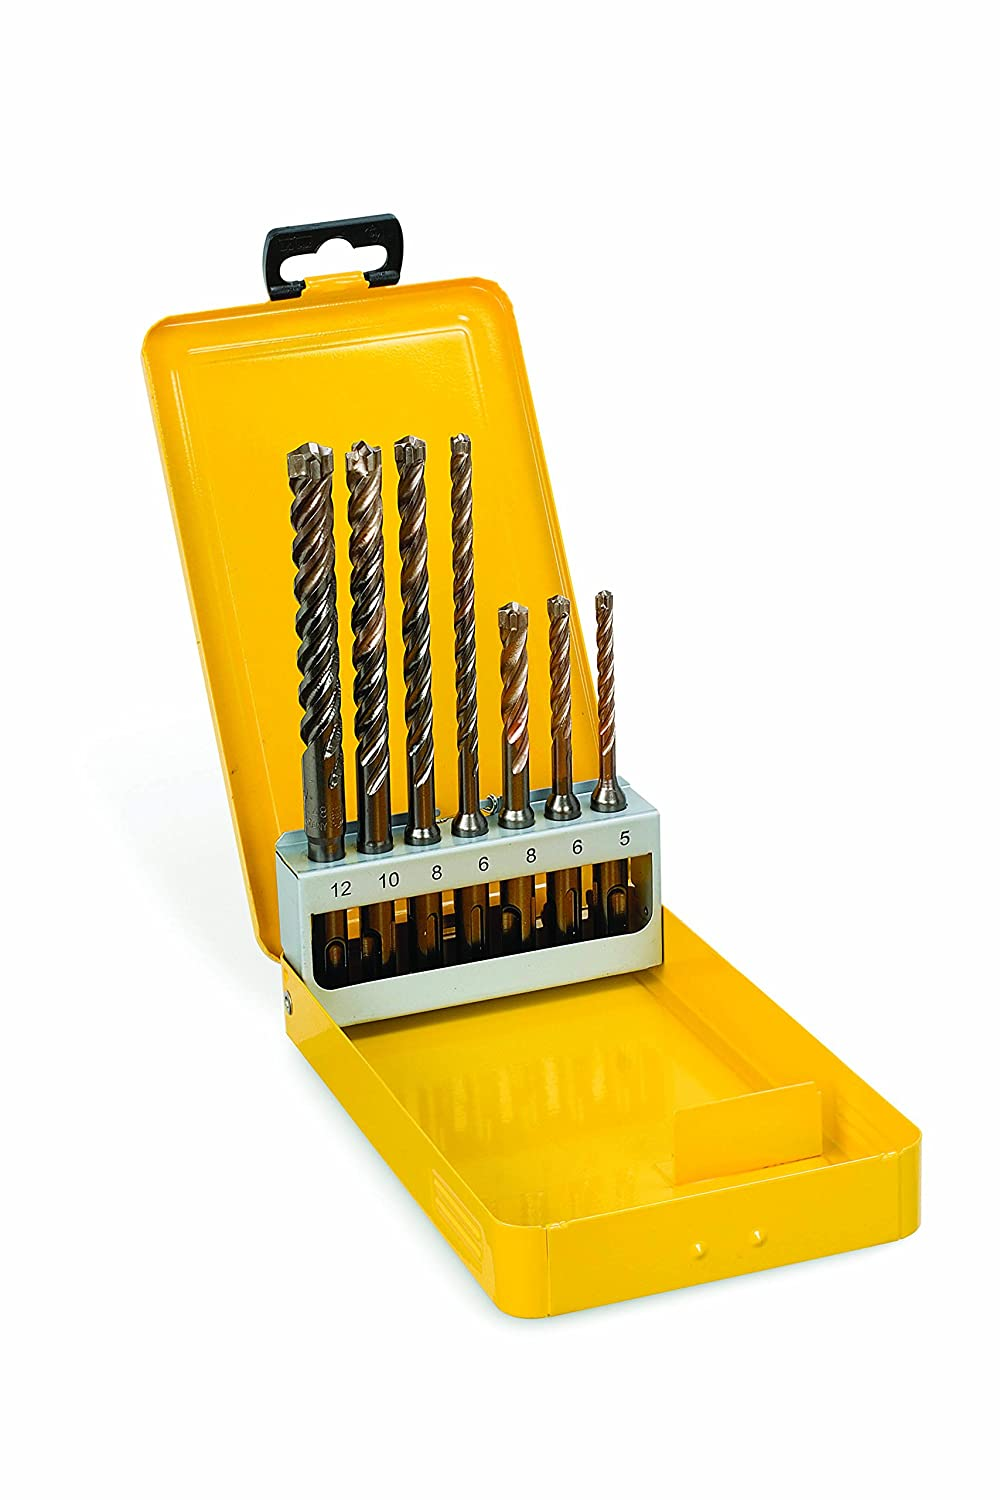 Set DeWalt XLR SDS-plus Ha mmerbohrer 7-tlg., Vollhartmetallkopf, /ø 5, 2x 6, 2x 8, 10, 12 mm, in Metallkassette DT8976